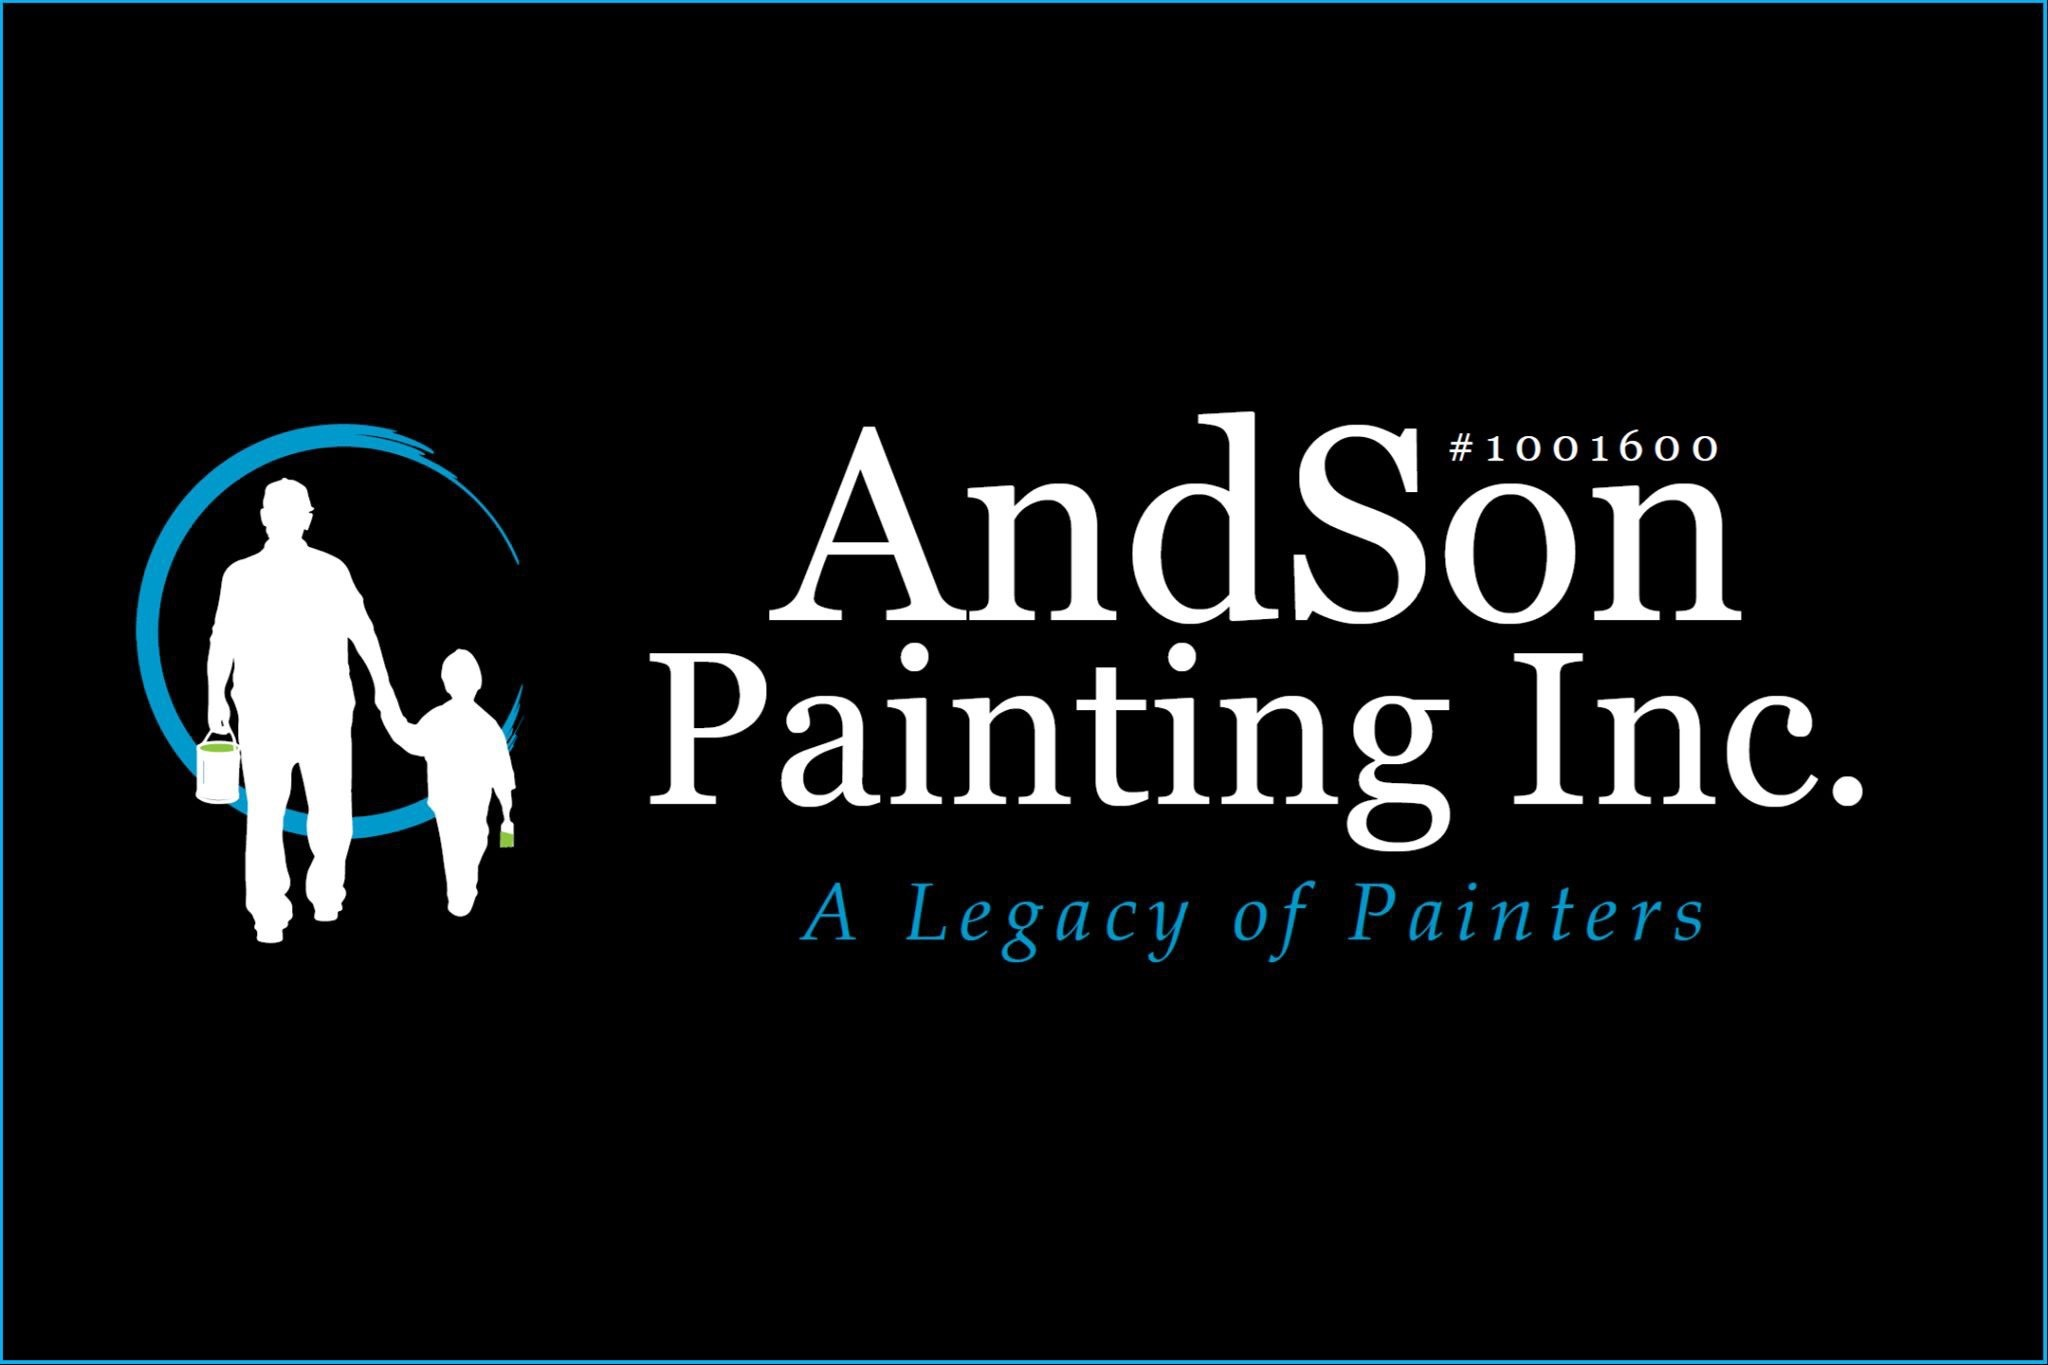 AndSon Painting